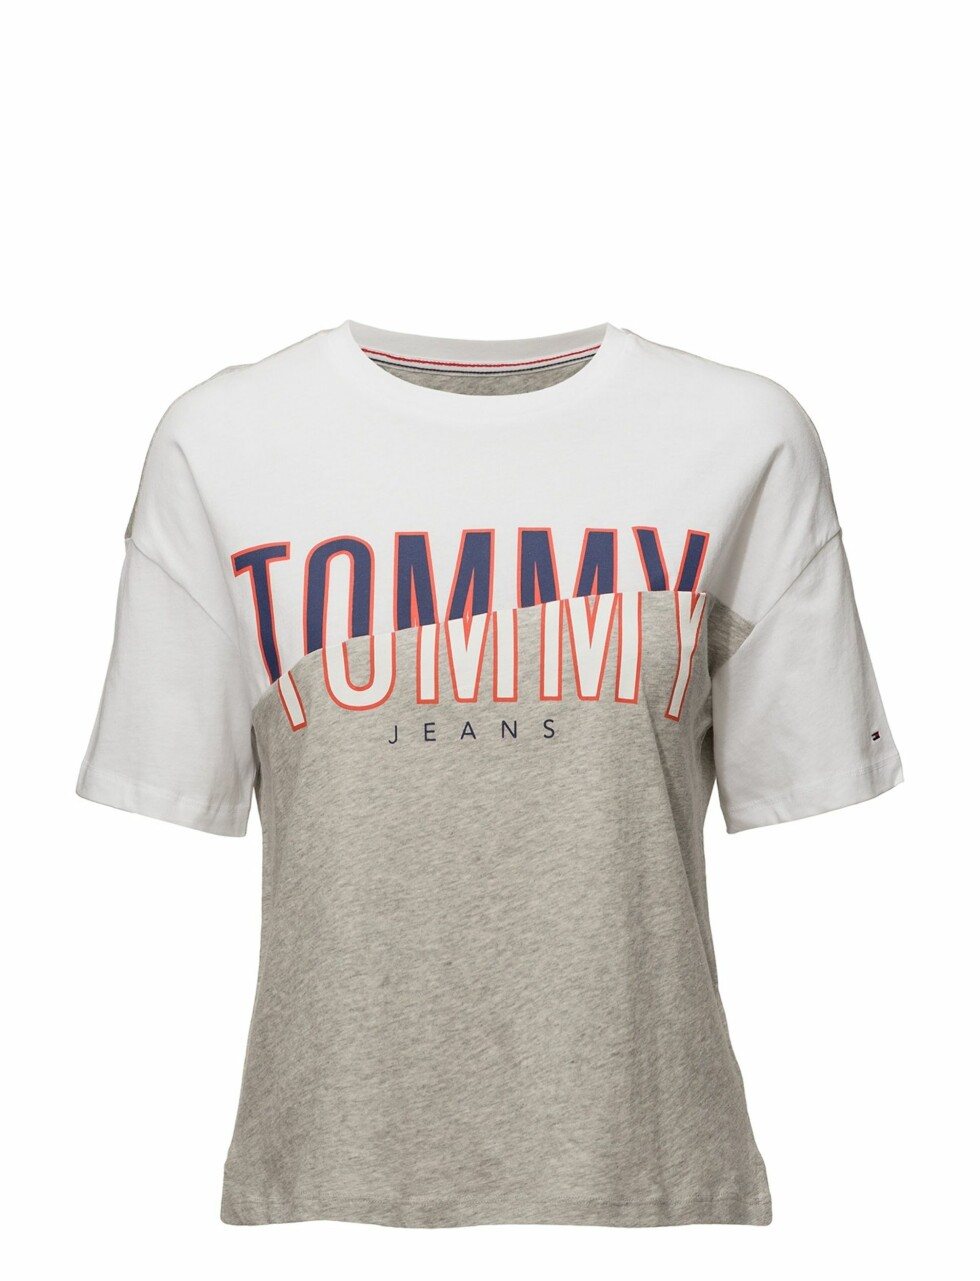 T-skjorte fra Tommy Jeans |550,-| https://www.boozt.com/no/no/tommy-jeans/tjw-cn-t-shirt-s-s-21_15823490/15823494?navId=67384&group=listing&position=1000000